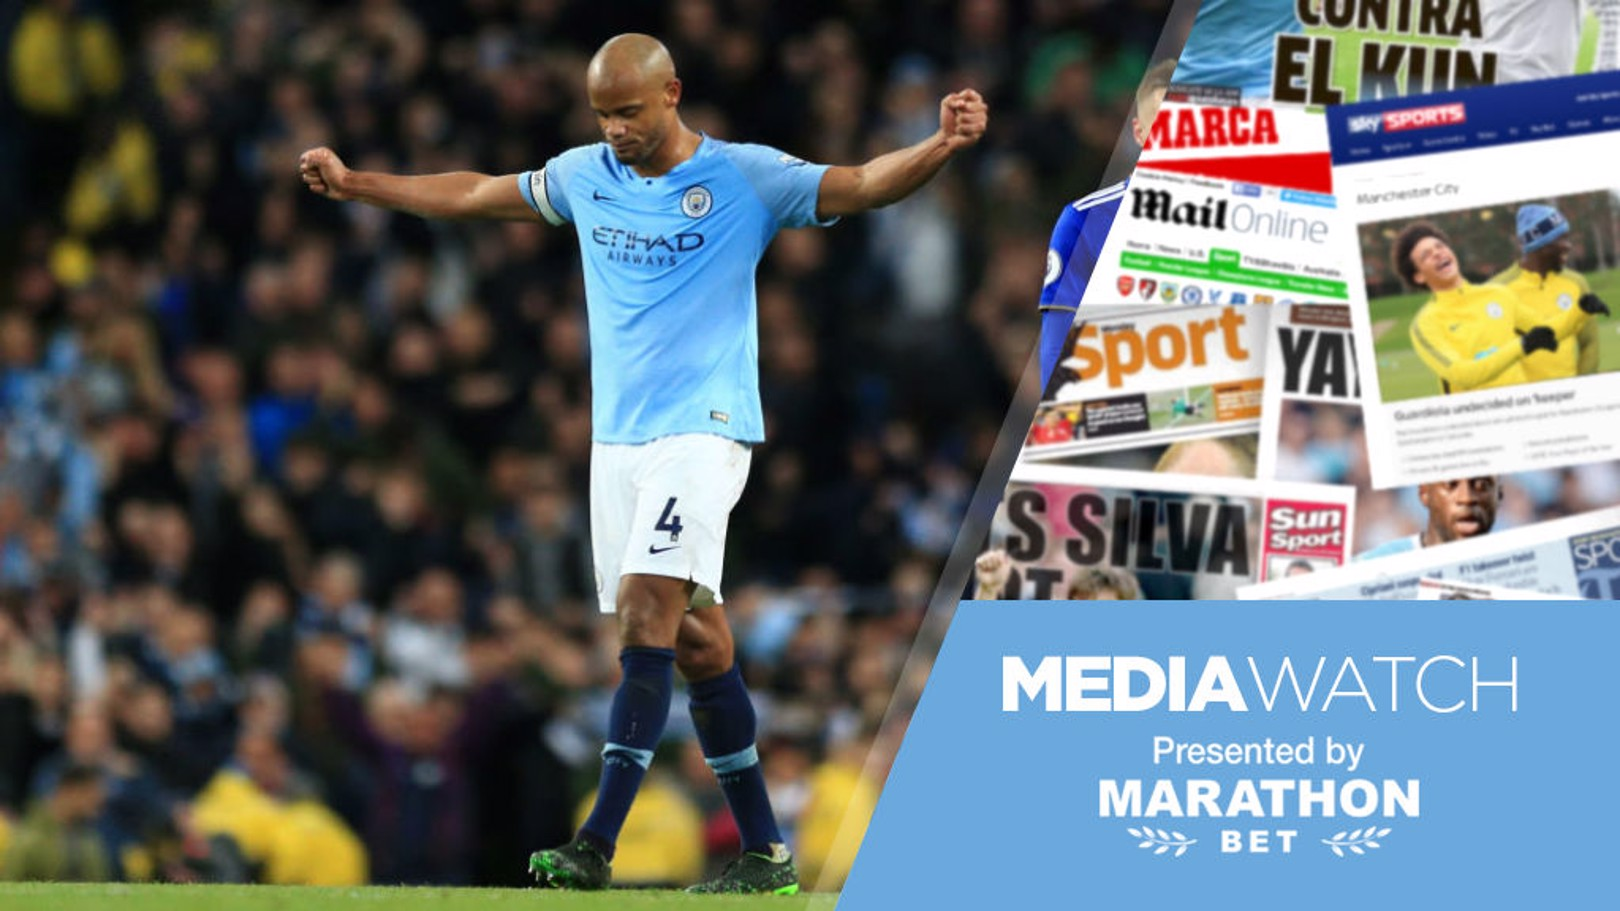 MEDIA WATCH: The press are full of praise for Vincent Kompany this morning!